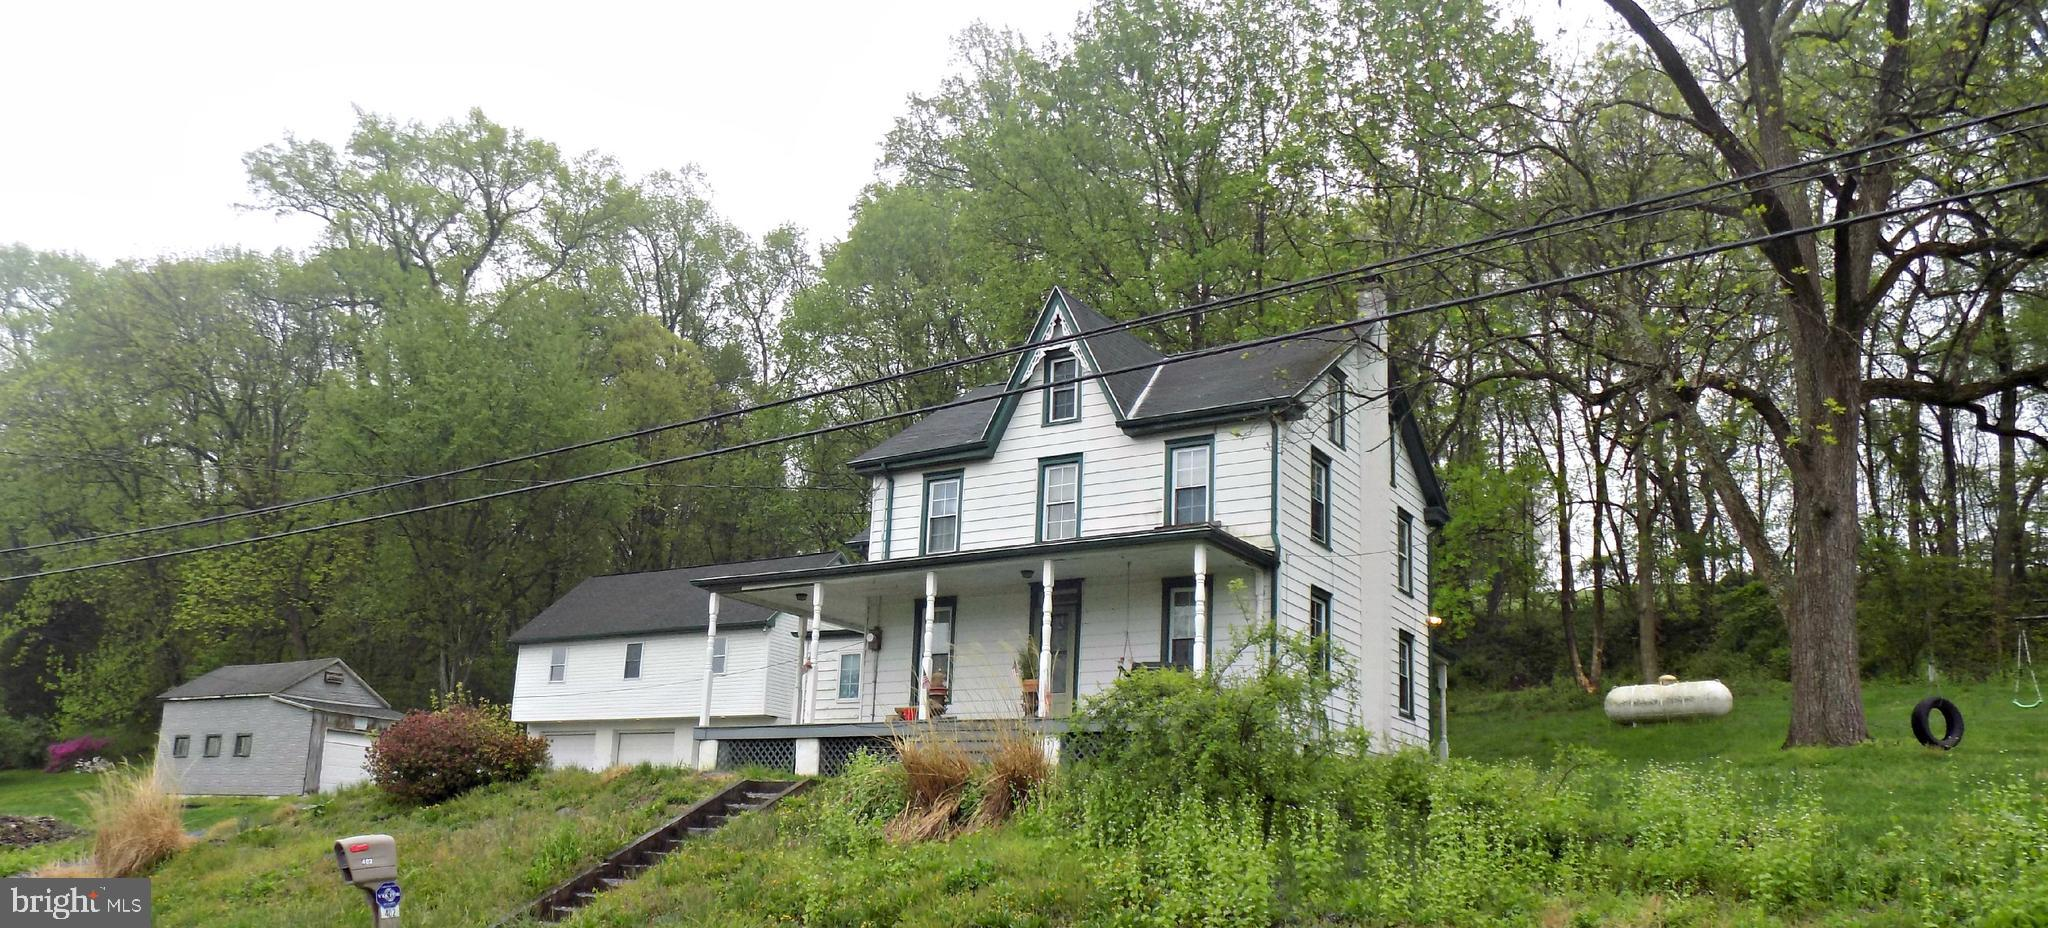 402 BRIDGE VALLEY ROAD, PEQUEA, PA 17565